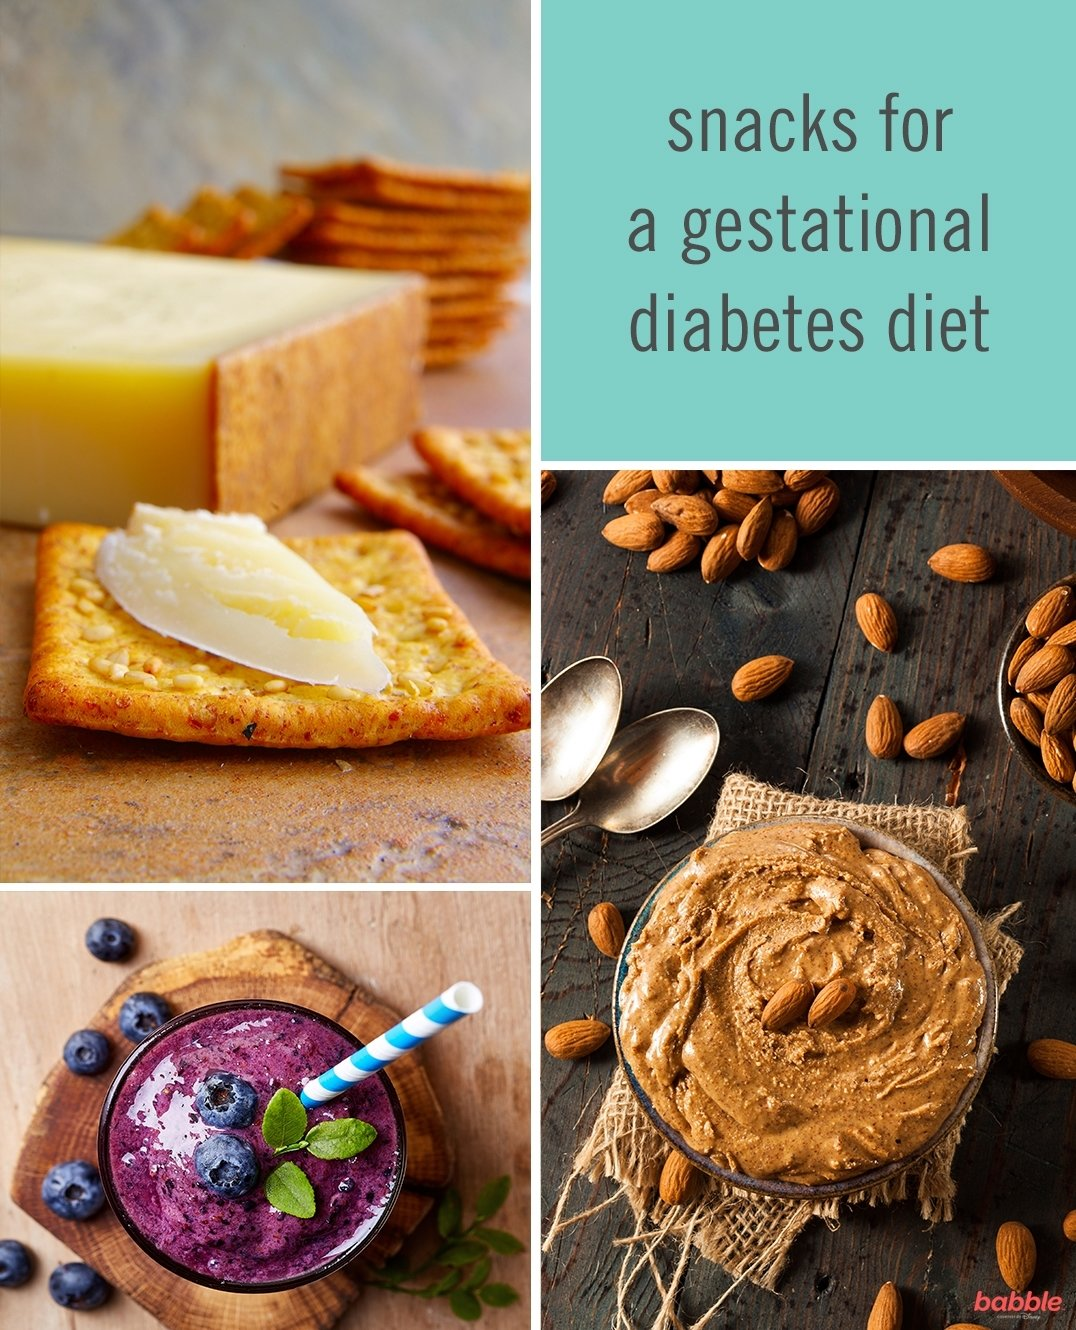 10 Awesome Meal Ideas For Gestational Diabetes snacks for pregnant moms with gestational diabetes 2020